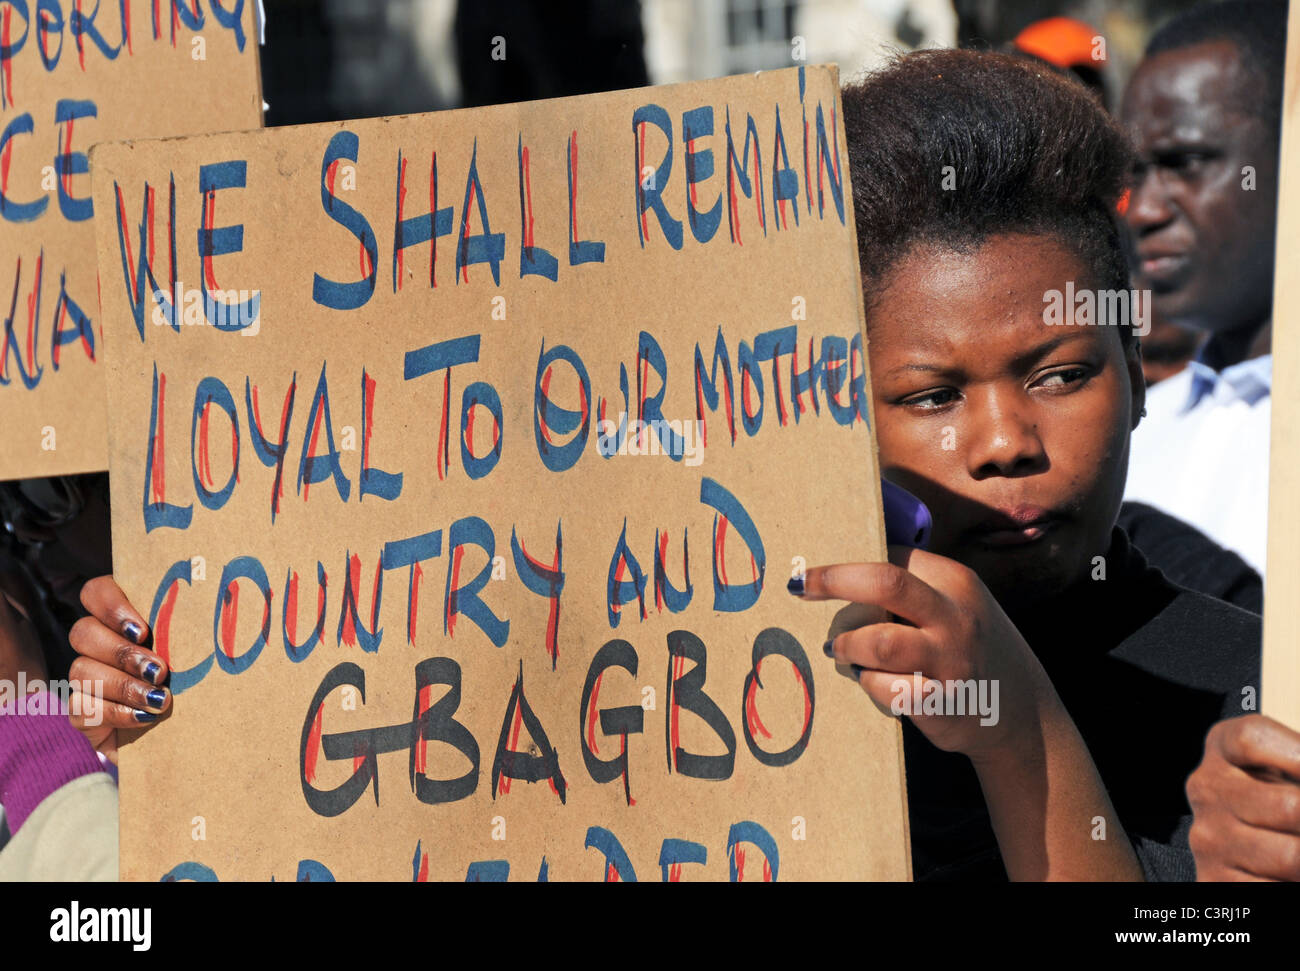 pro President Gbagbo supporters protest French & UN interference, rigging election & creating civil war - Stock Image